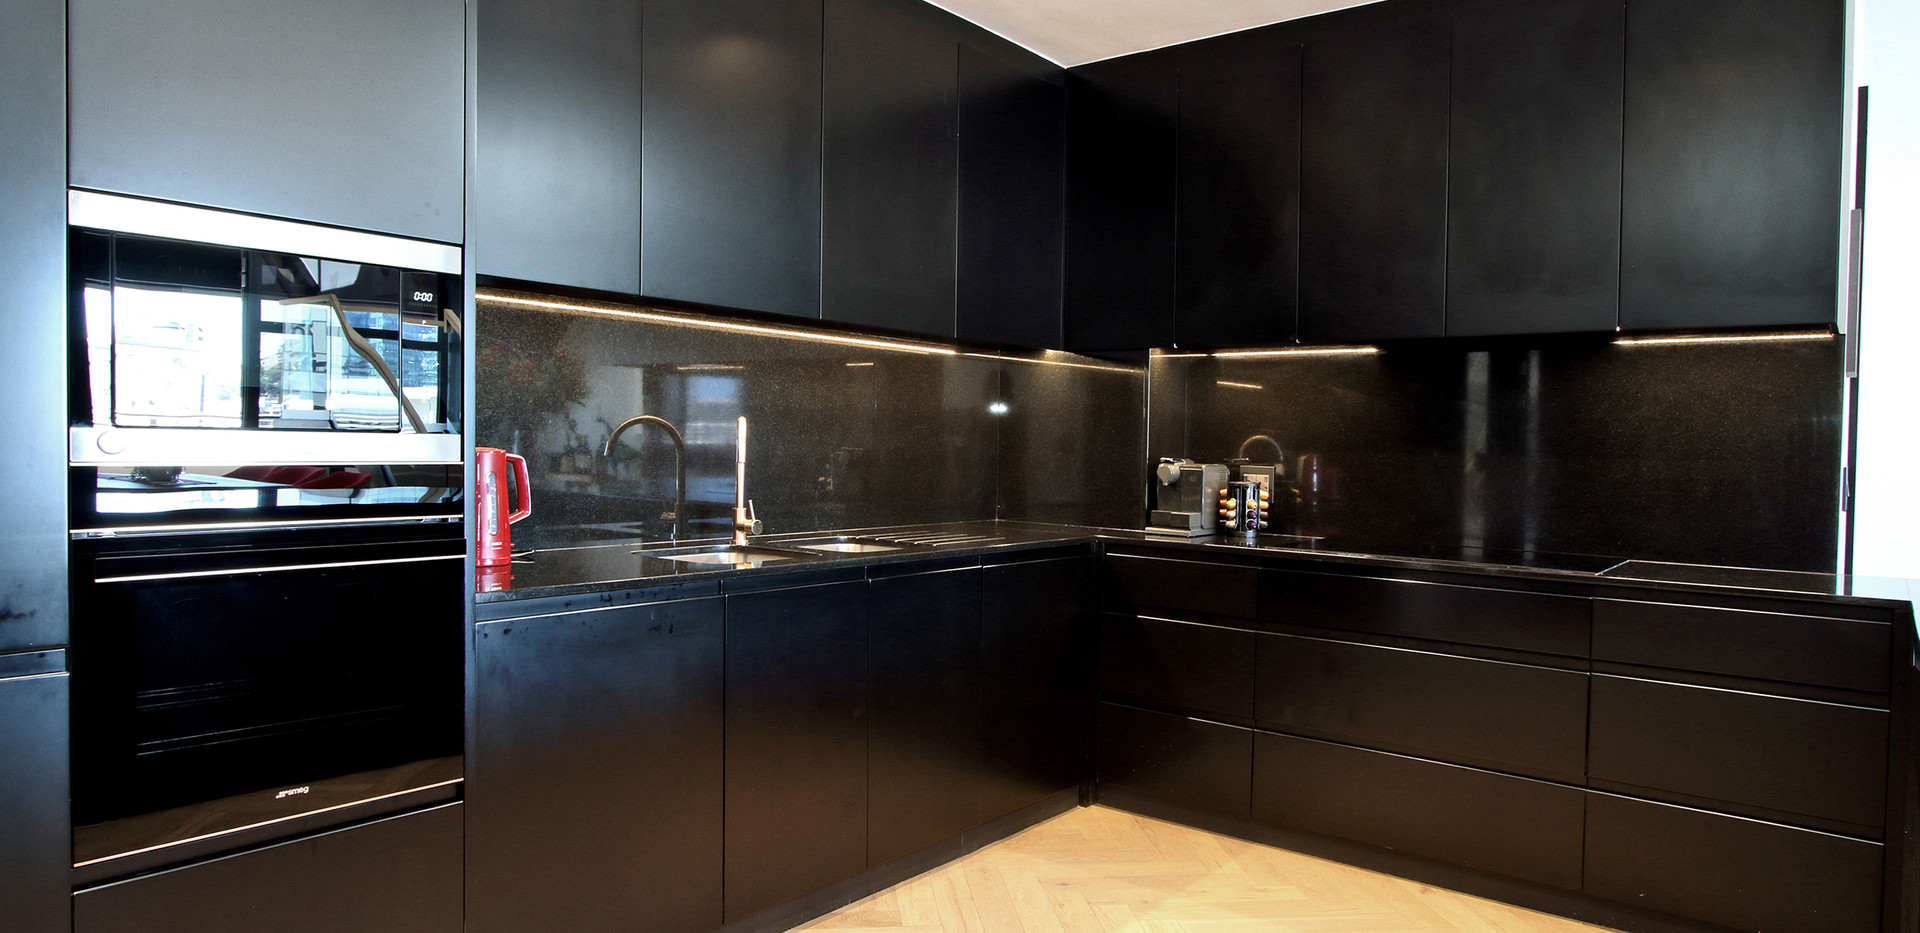 Kitchen_Pentouse_Onyx_1106_ITC_2.jpg